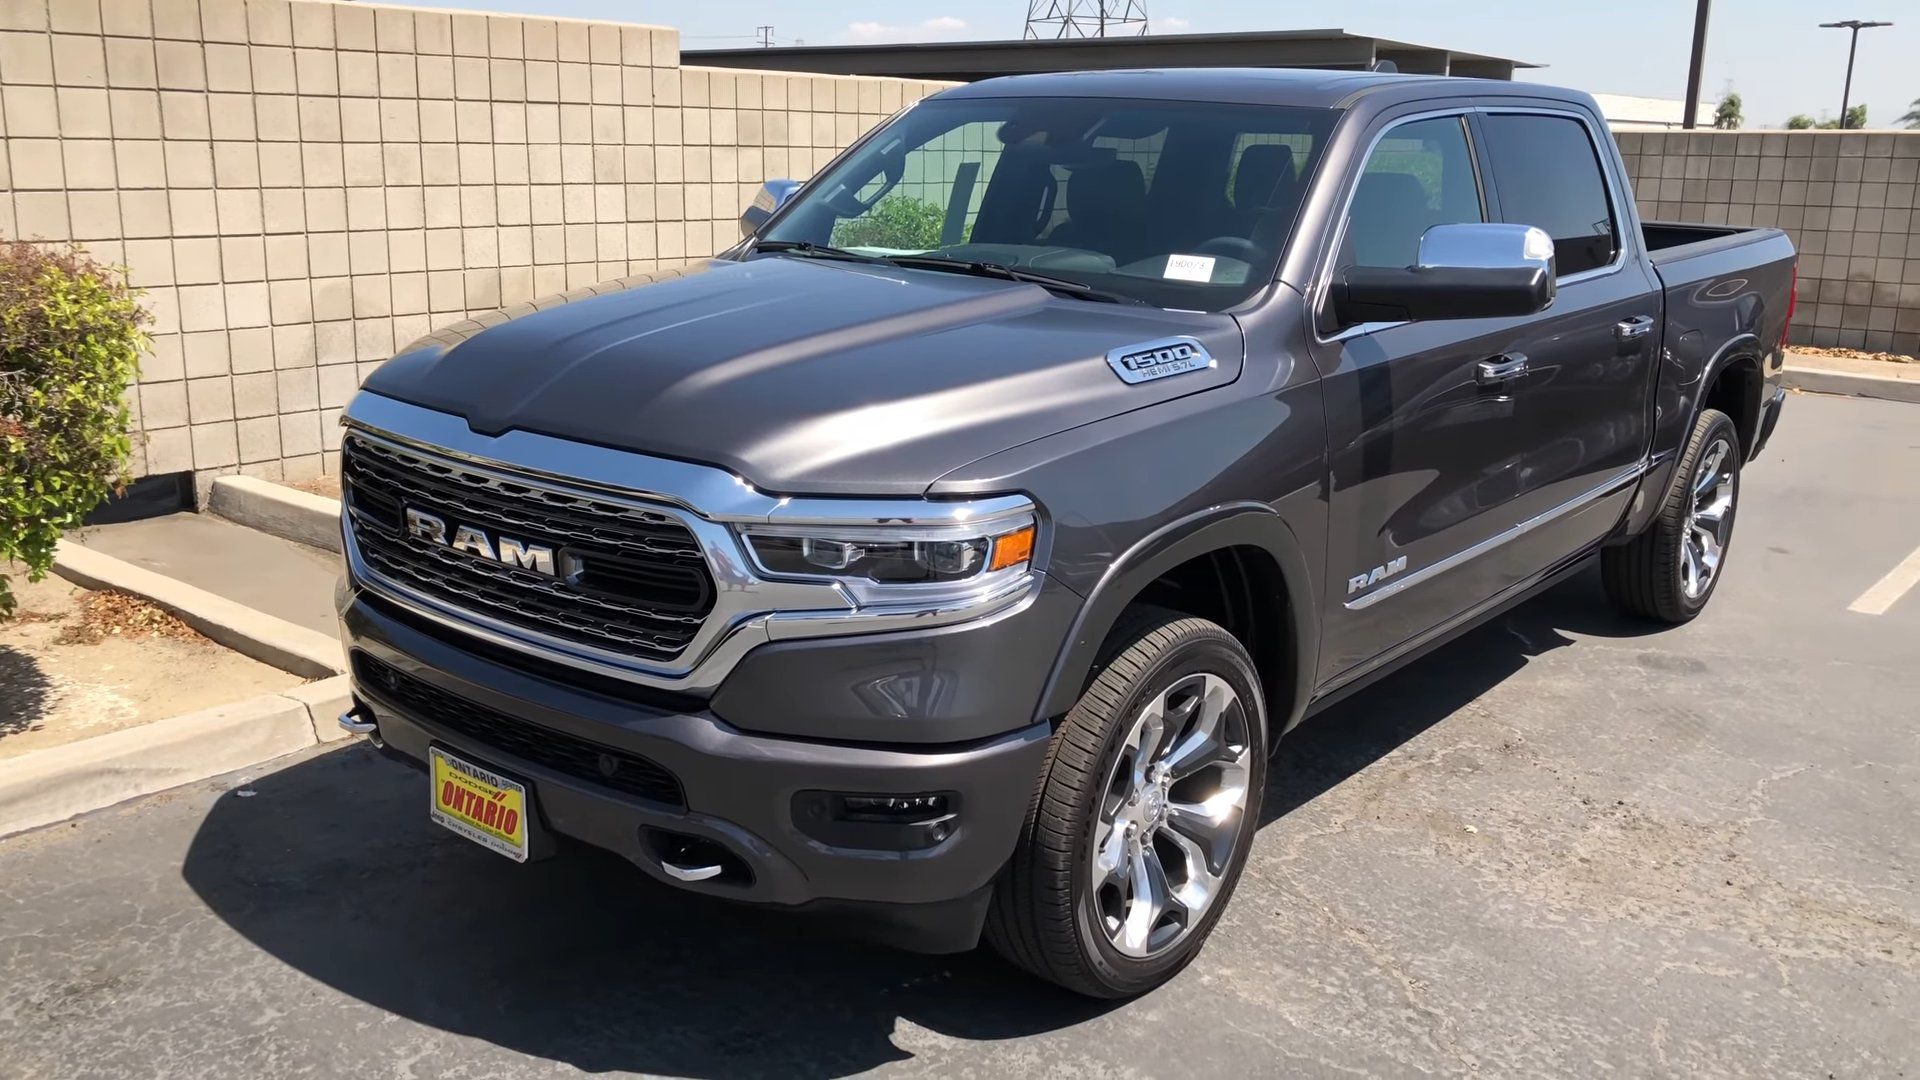 2019 dark grey Dodge Ram 1500 Limited